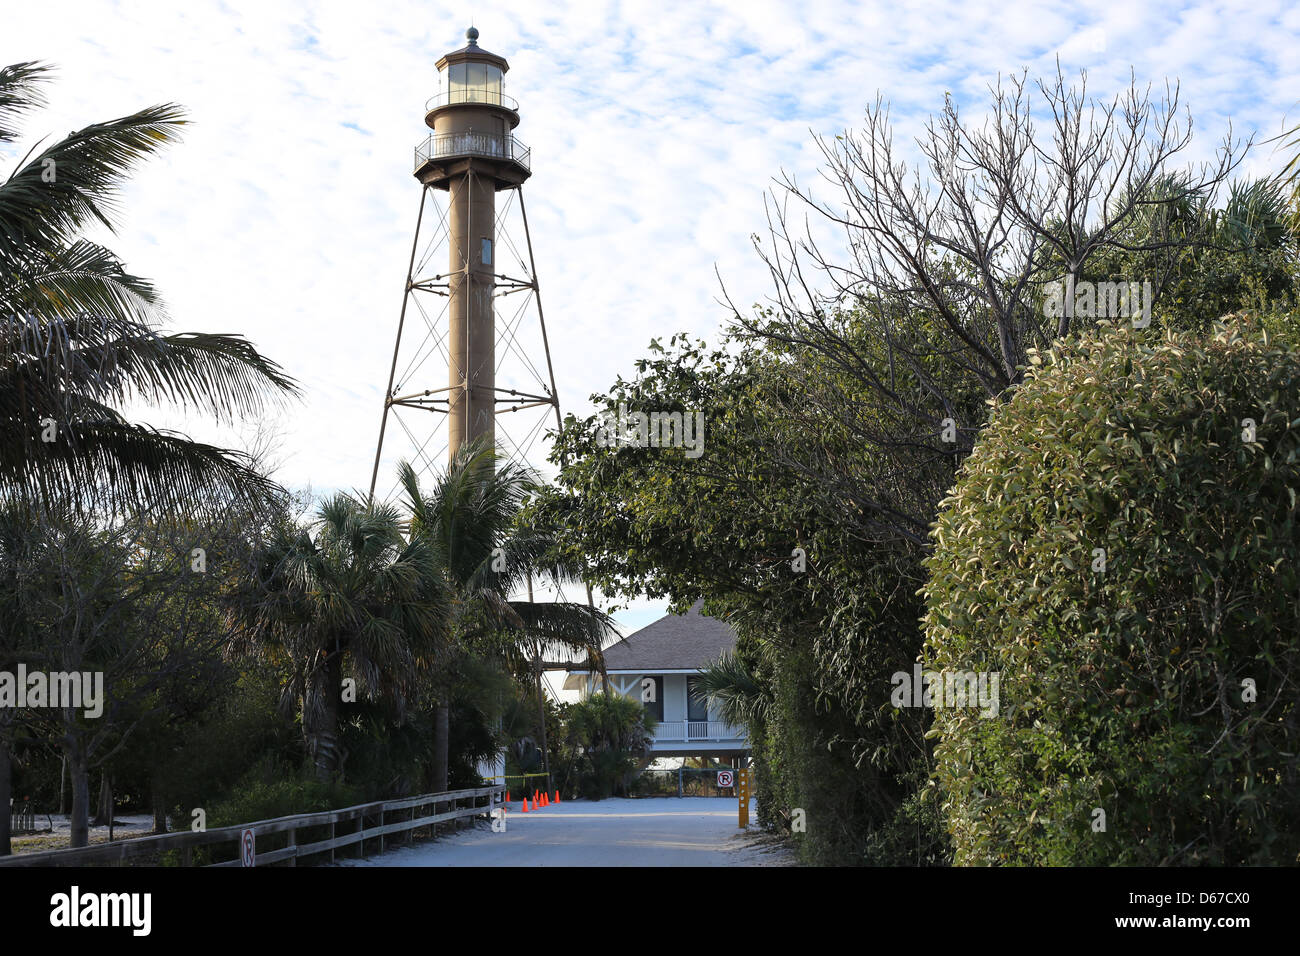 The Sanibel Island Light Or Point Ybel Light Is The First Lighthouse On  Floridau0027s Gulf Coast North Of Key West